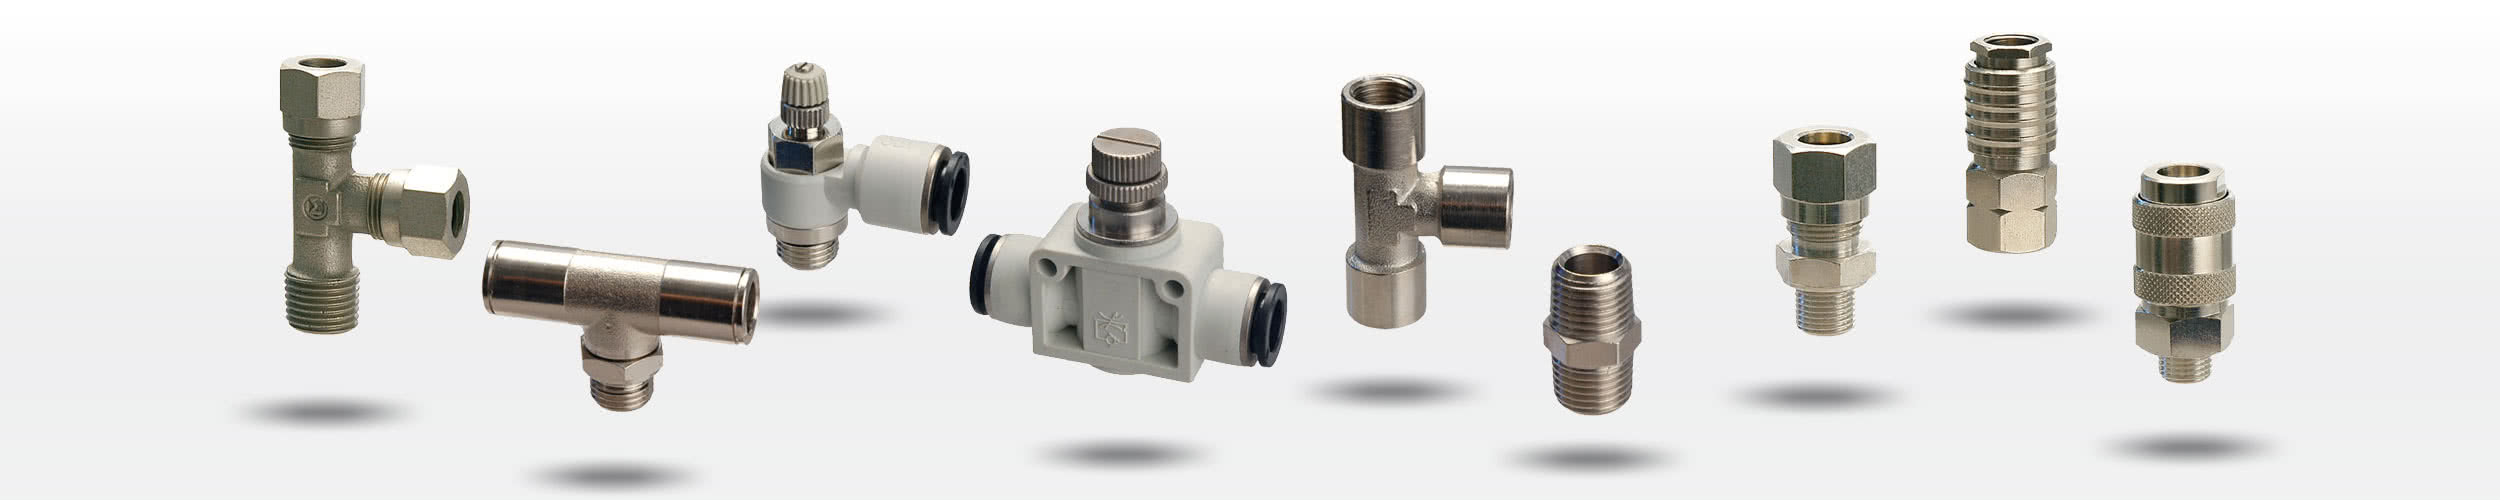 Pneumatic accessories - fittings, connectors, quick couplings, tubes